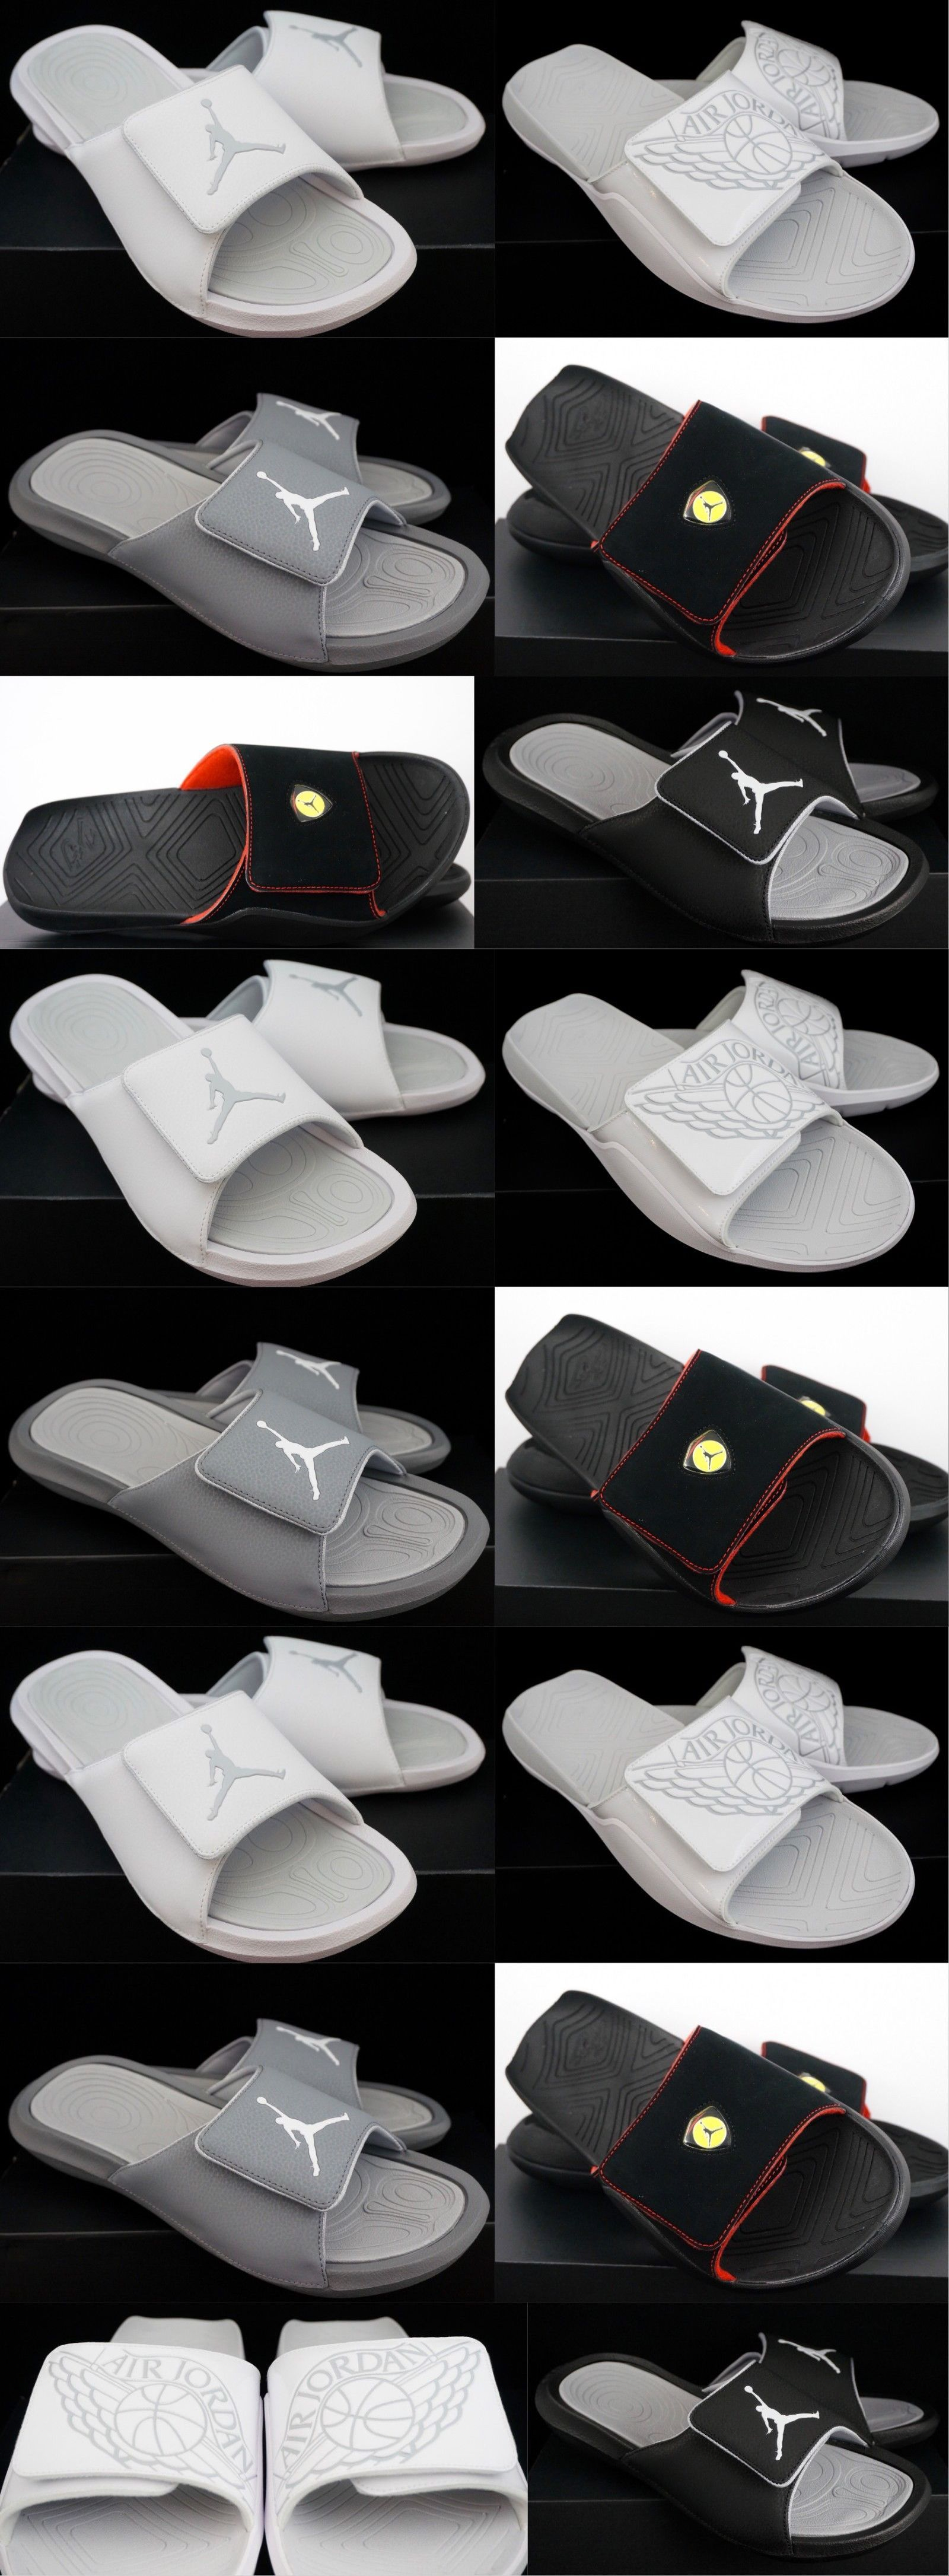 875cfda84ccefb Sandals 11504  Nike Air Jordan Hydro Slides Mens Sandals -  BUY IT NOW  ONLY   35.97 on  eBay  sandals  jordan  hydro  slides